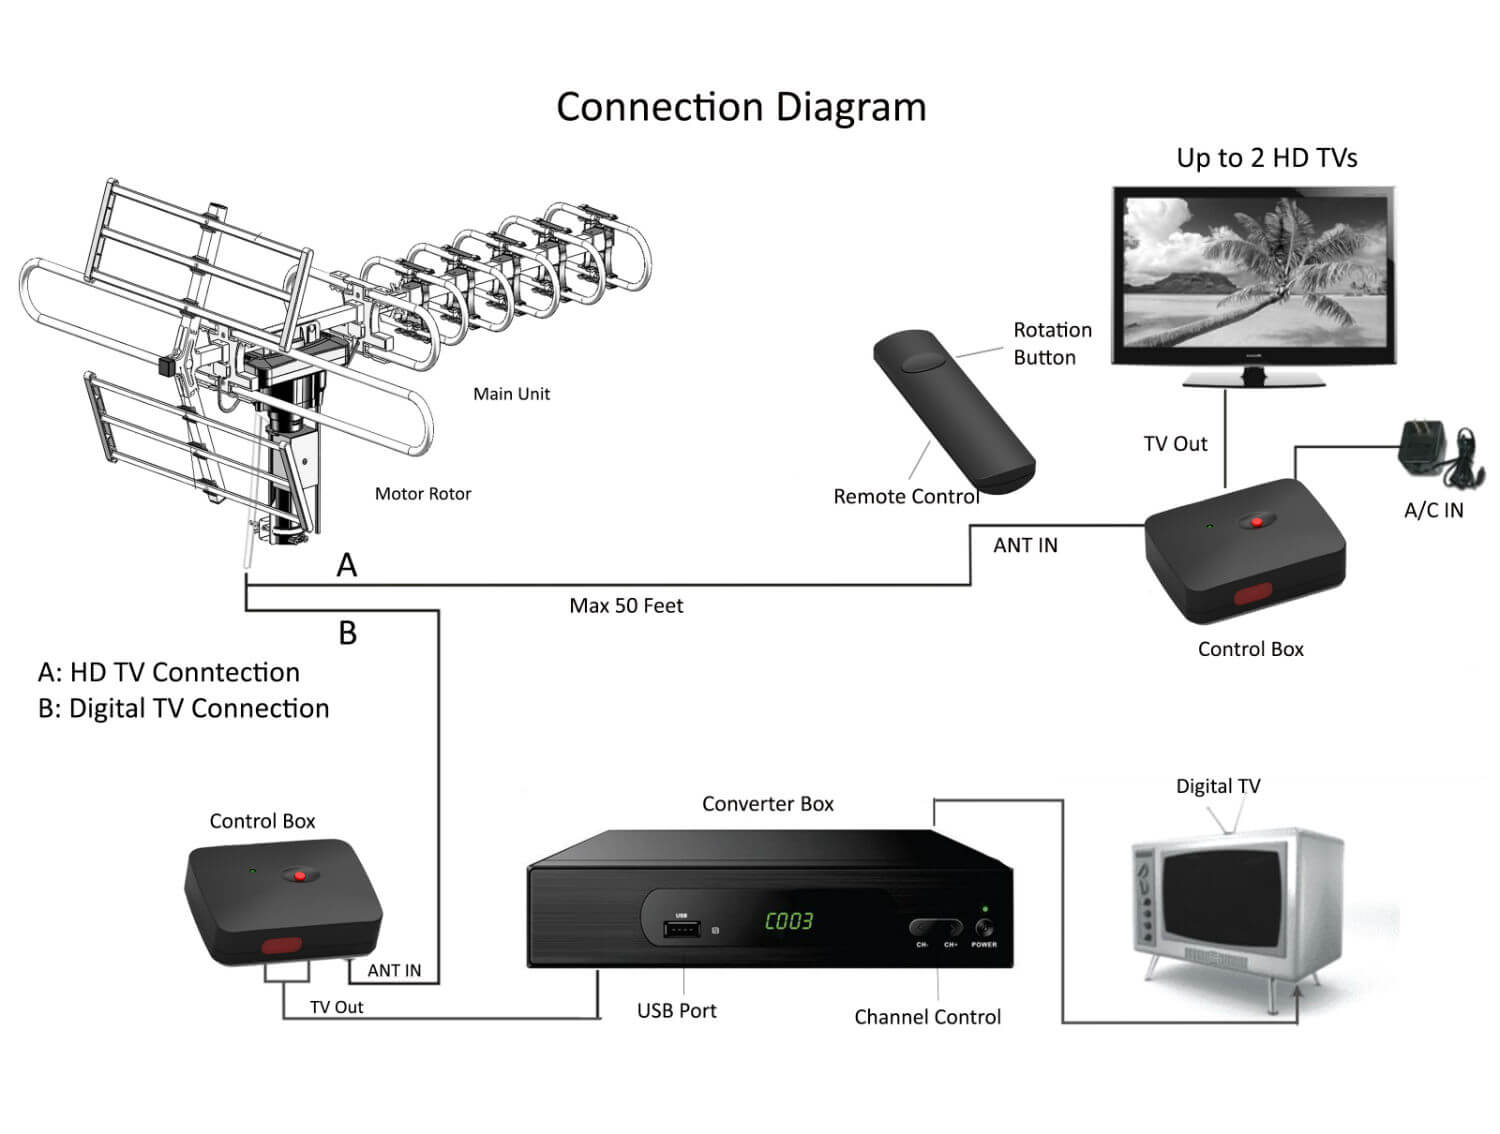 Connection-Guide-Testing Dtv Antenna Map on dtv map canada, digital tv signal map, dtv va map, dtv channels by zip code, dtv coverage map, dtv broadcast map, dtv channels in my area, dtv coverage areas, dtv signal map, dtv reception maps,